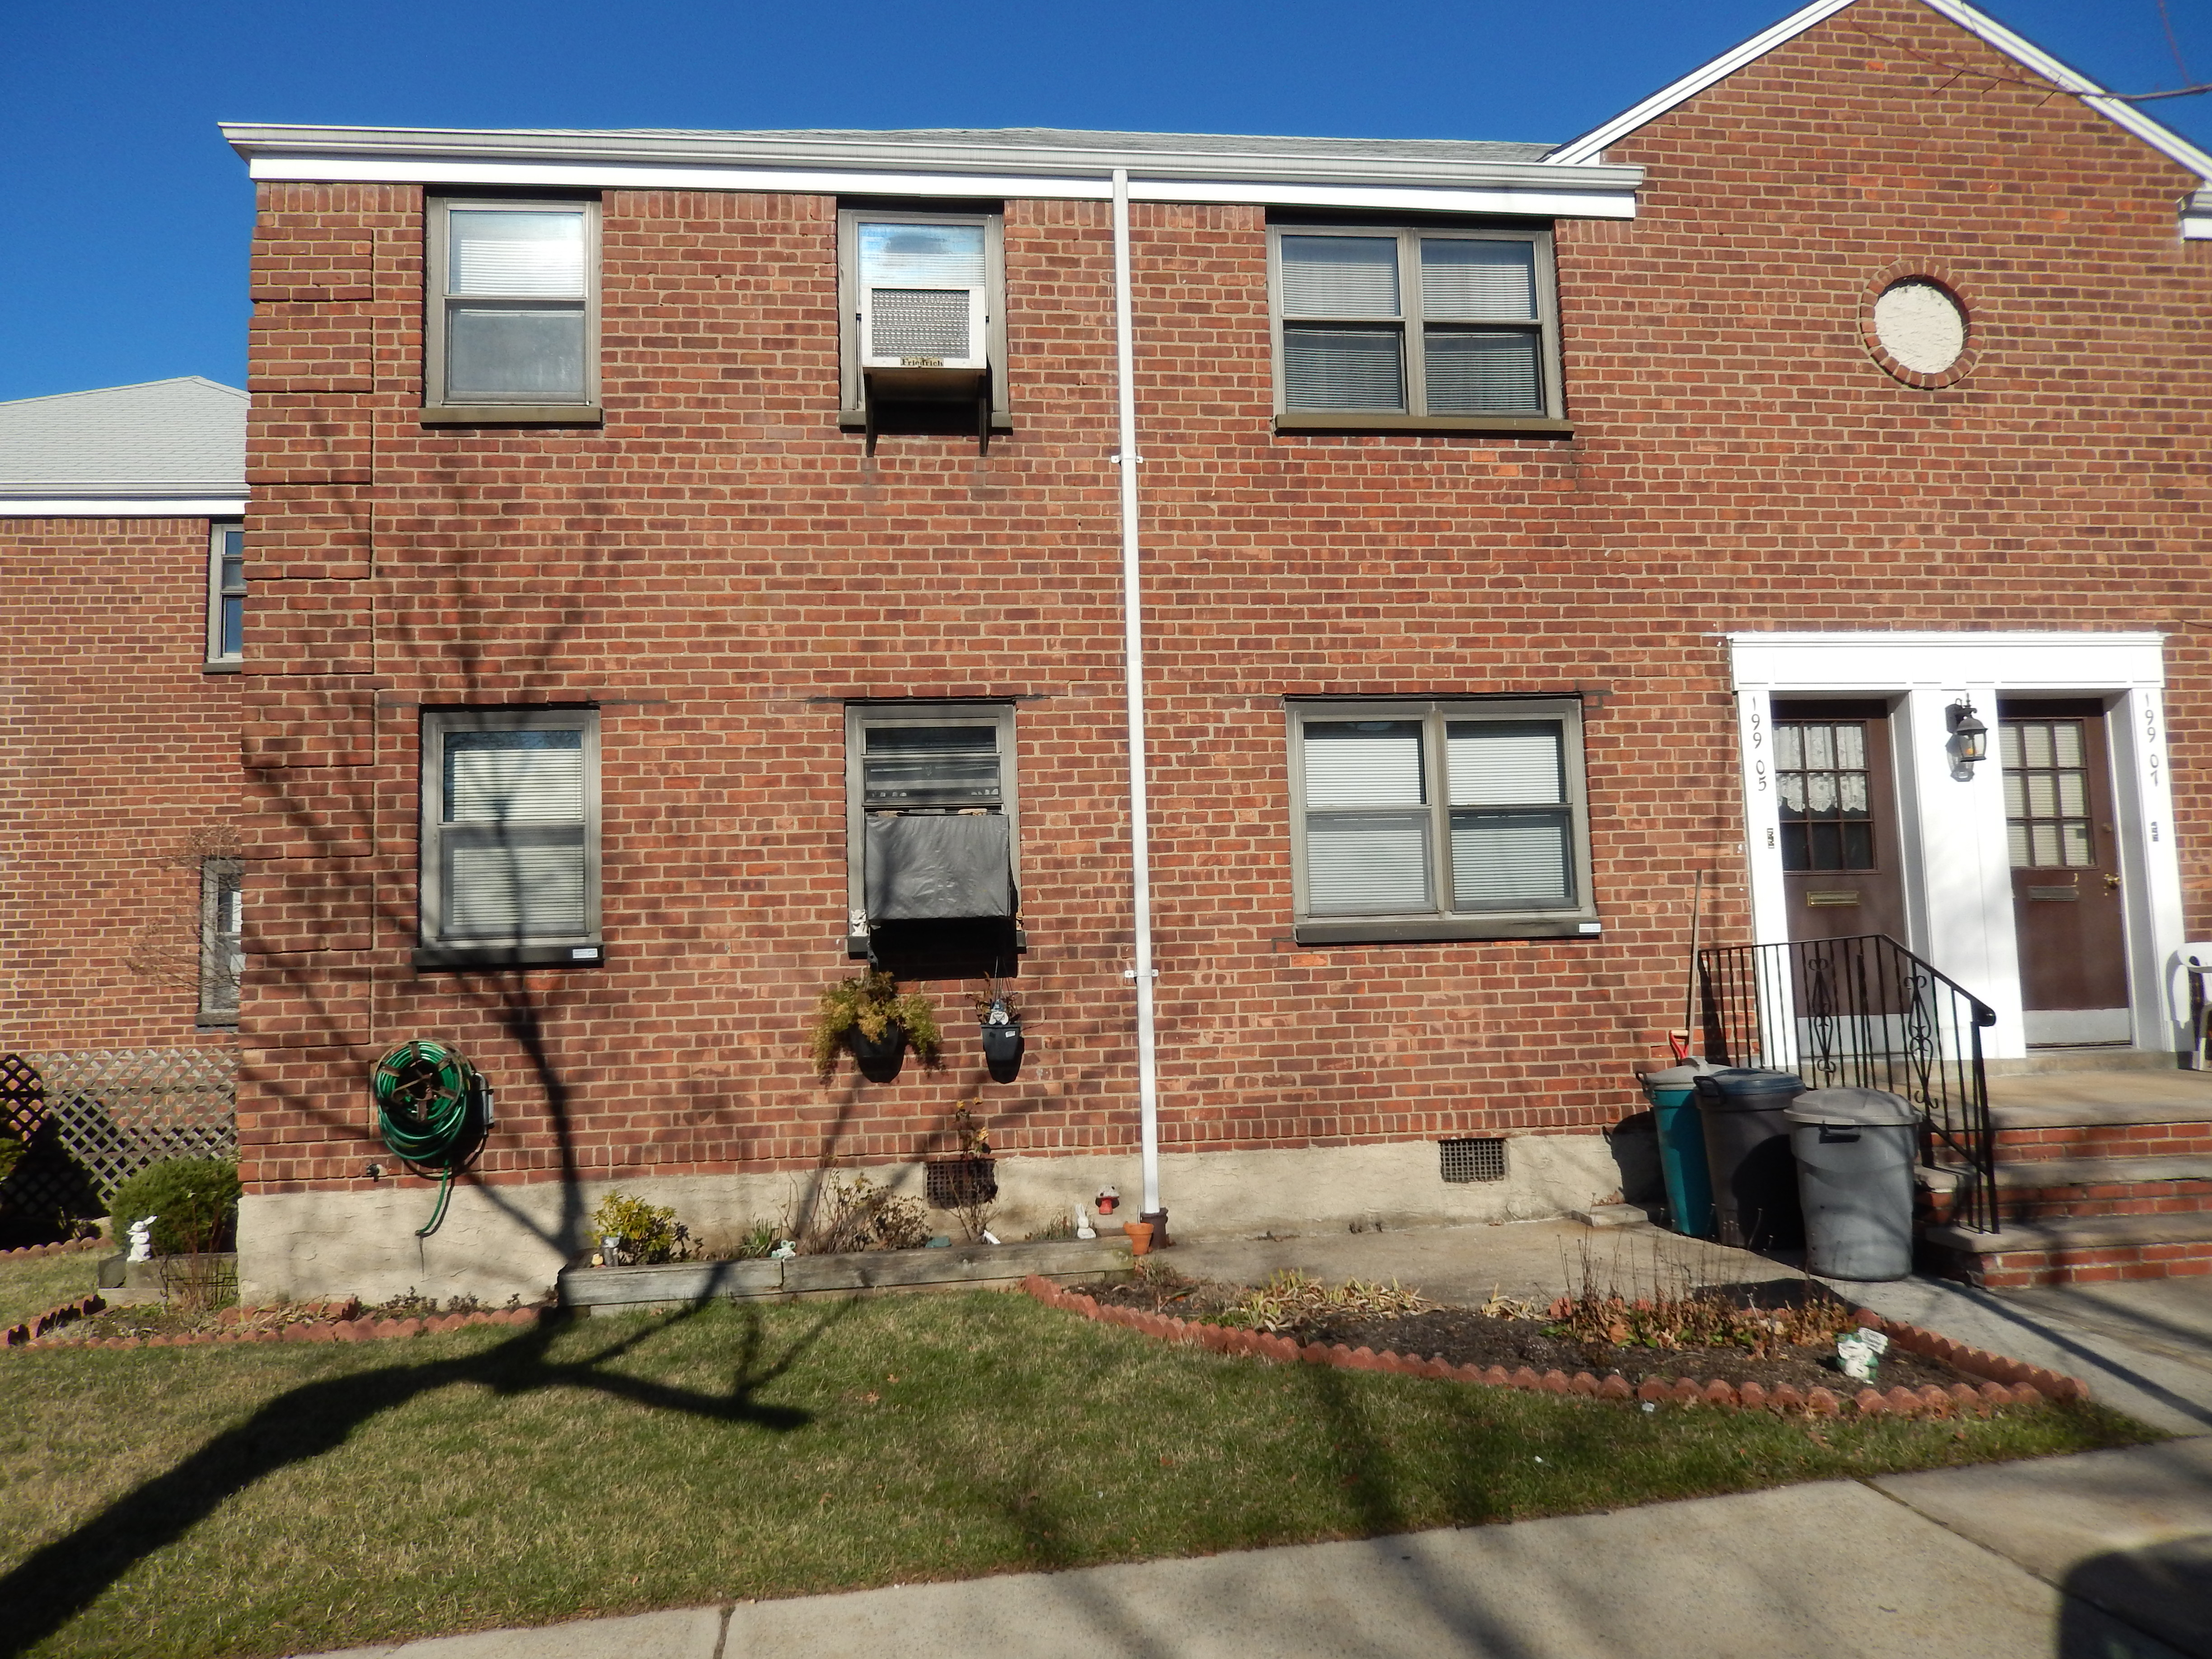 Beautiful 5 Room, 2 Bedroom in Clearview Gardens in Whitestone Near Transportation (QM20, Q16), Bridges, Highways, Schools and Shopping (Information deemed to be reliable although not warranted or guaranteed)